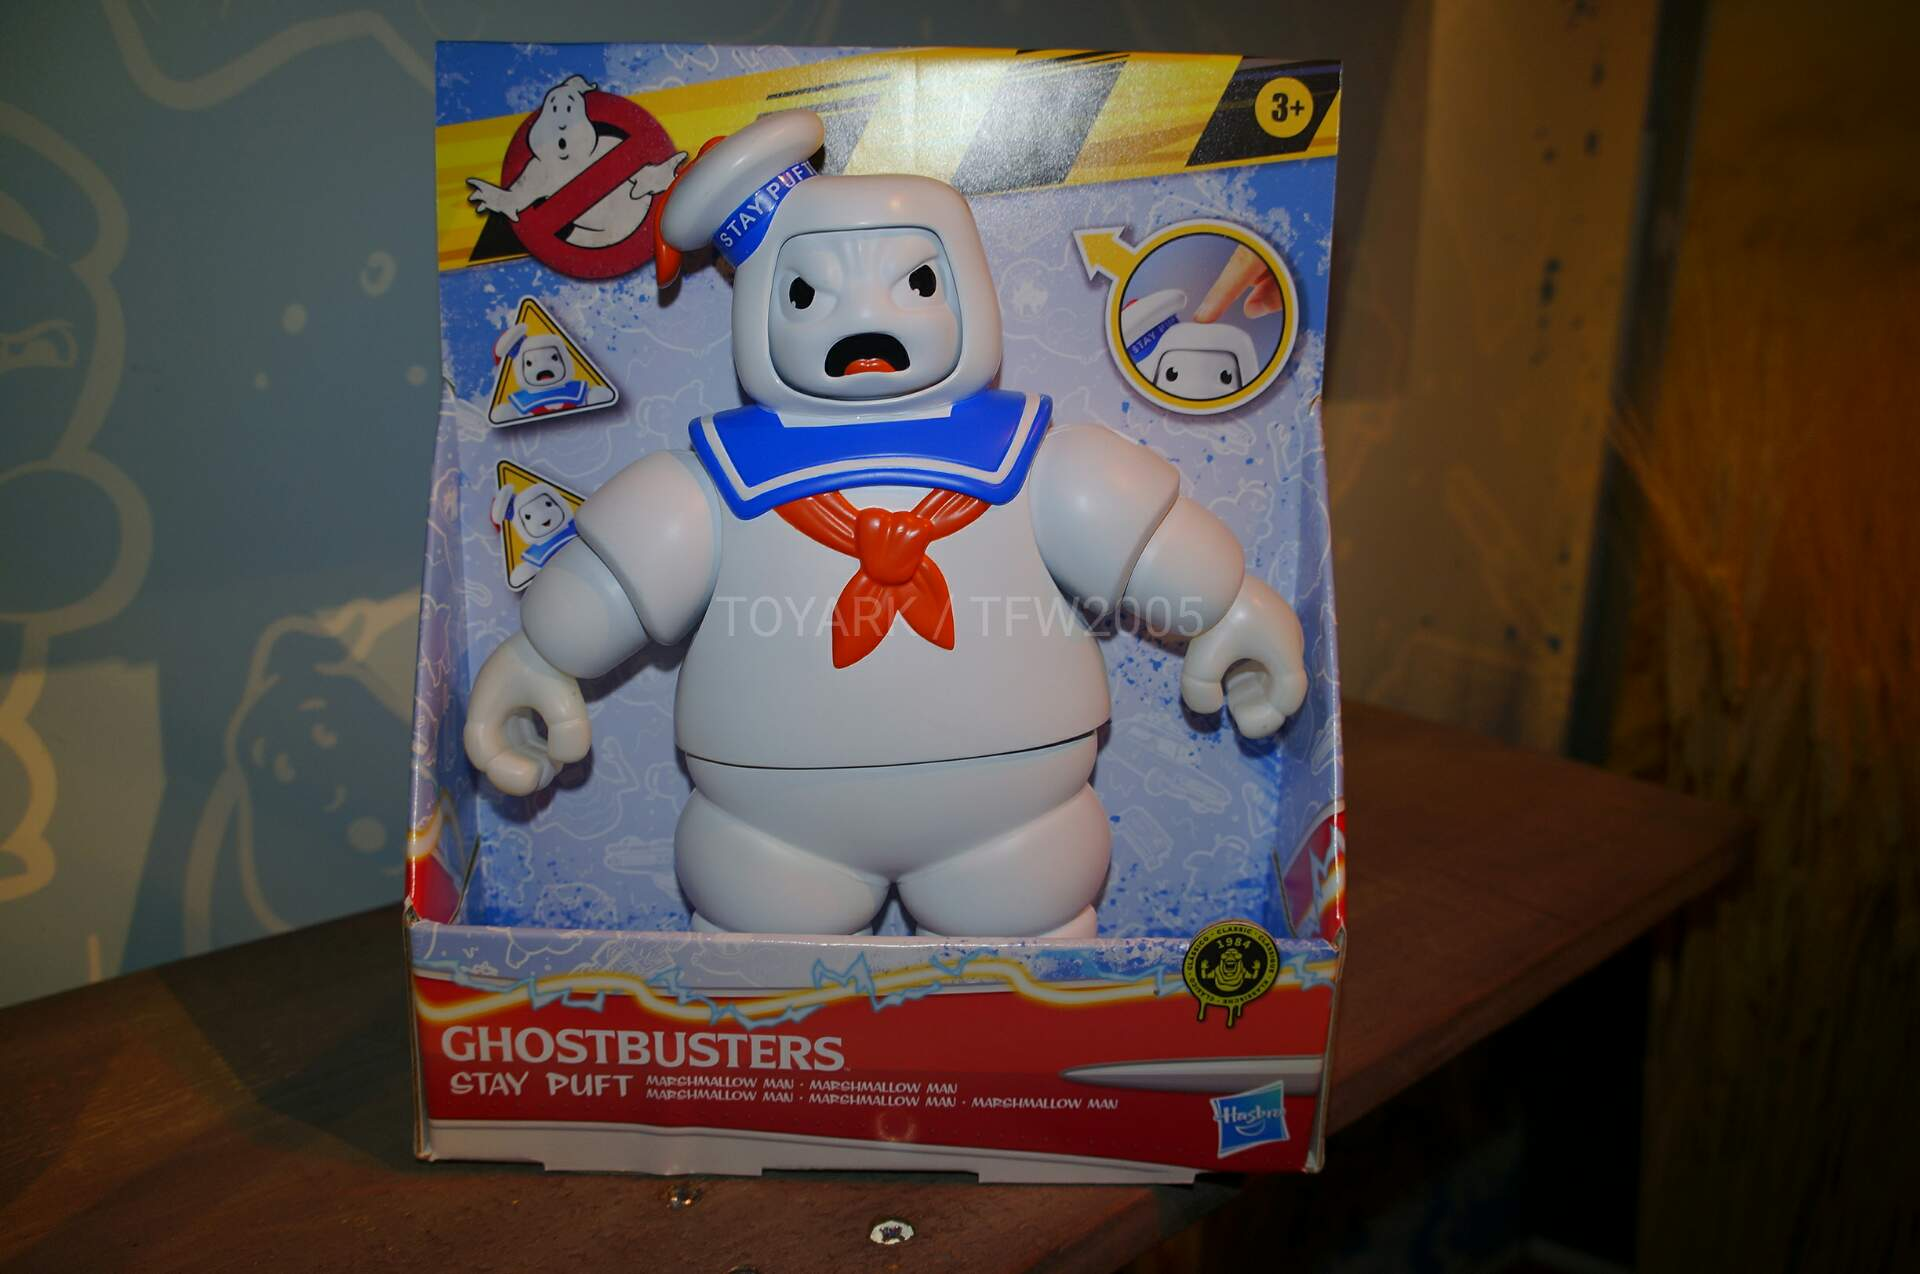 Toy-Fair-2020-Hasbro-Ghostbusters-068.jpg